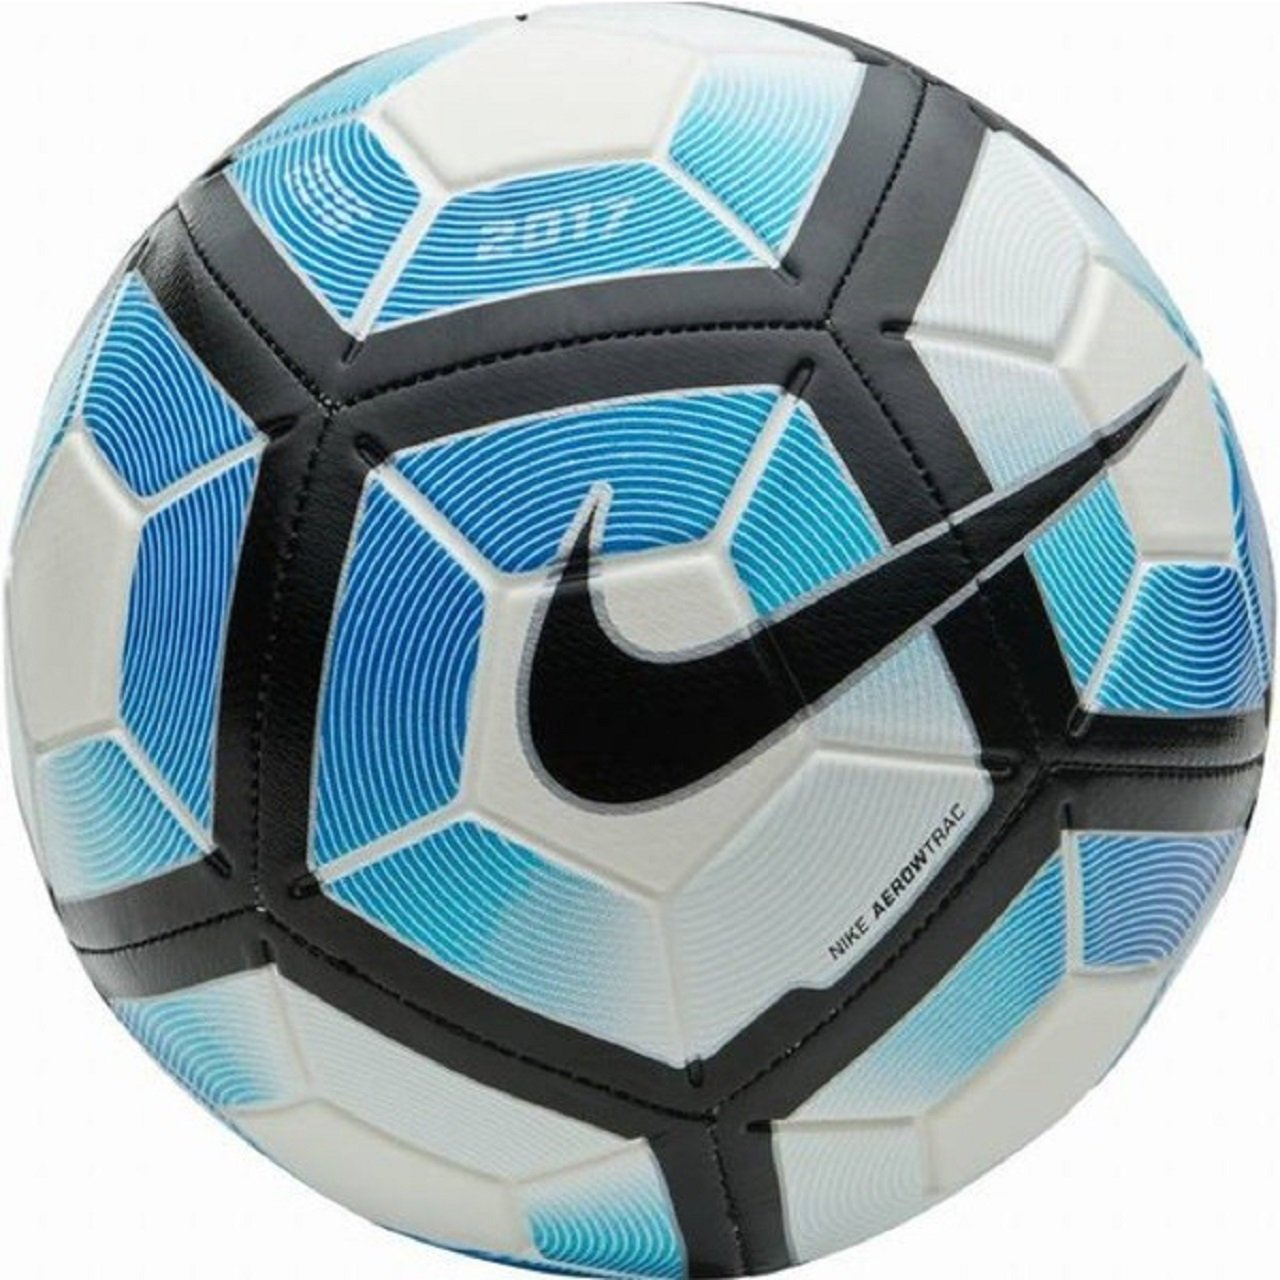 I have bought this ball in the past and will continue buying Nike soccer  balls as long as they are made of good quality like this one. 3dc59350b907